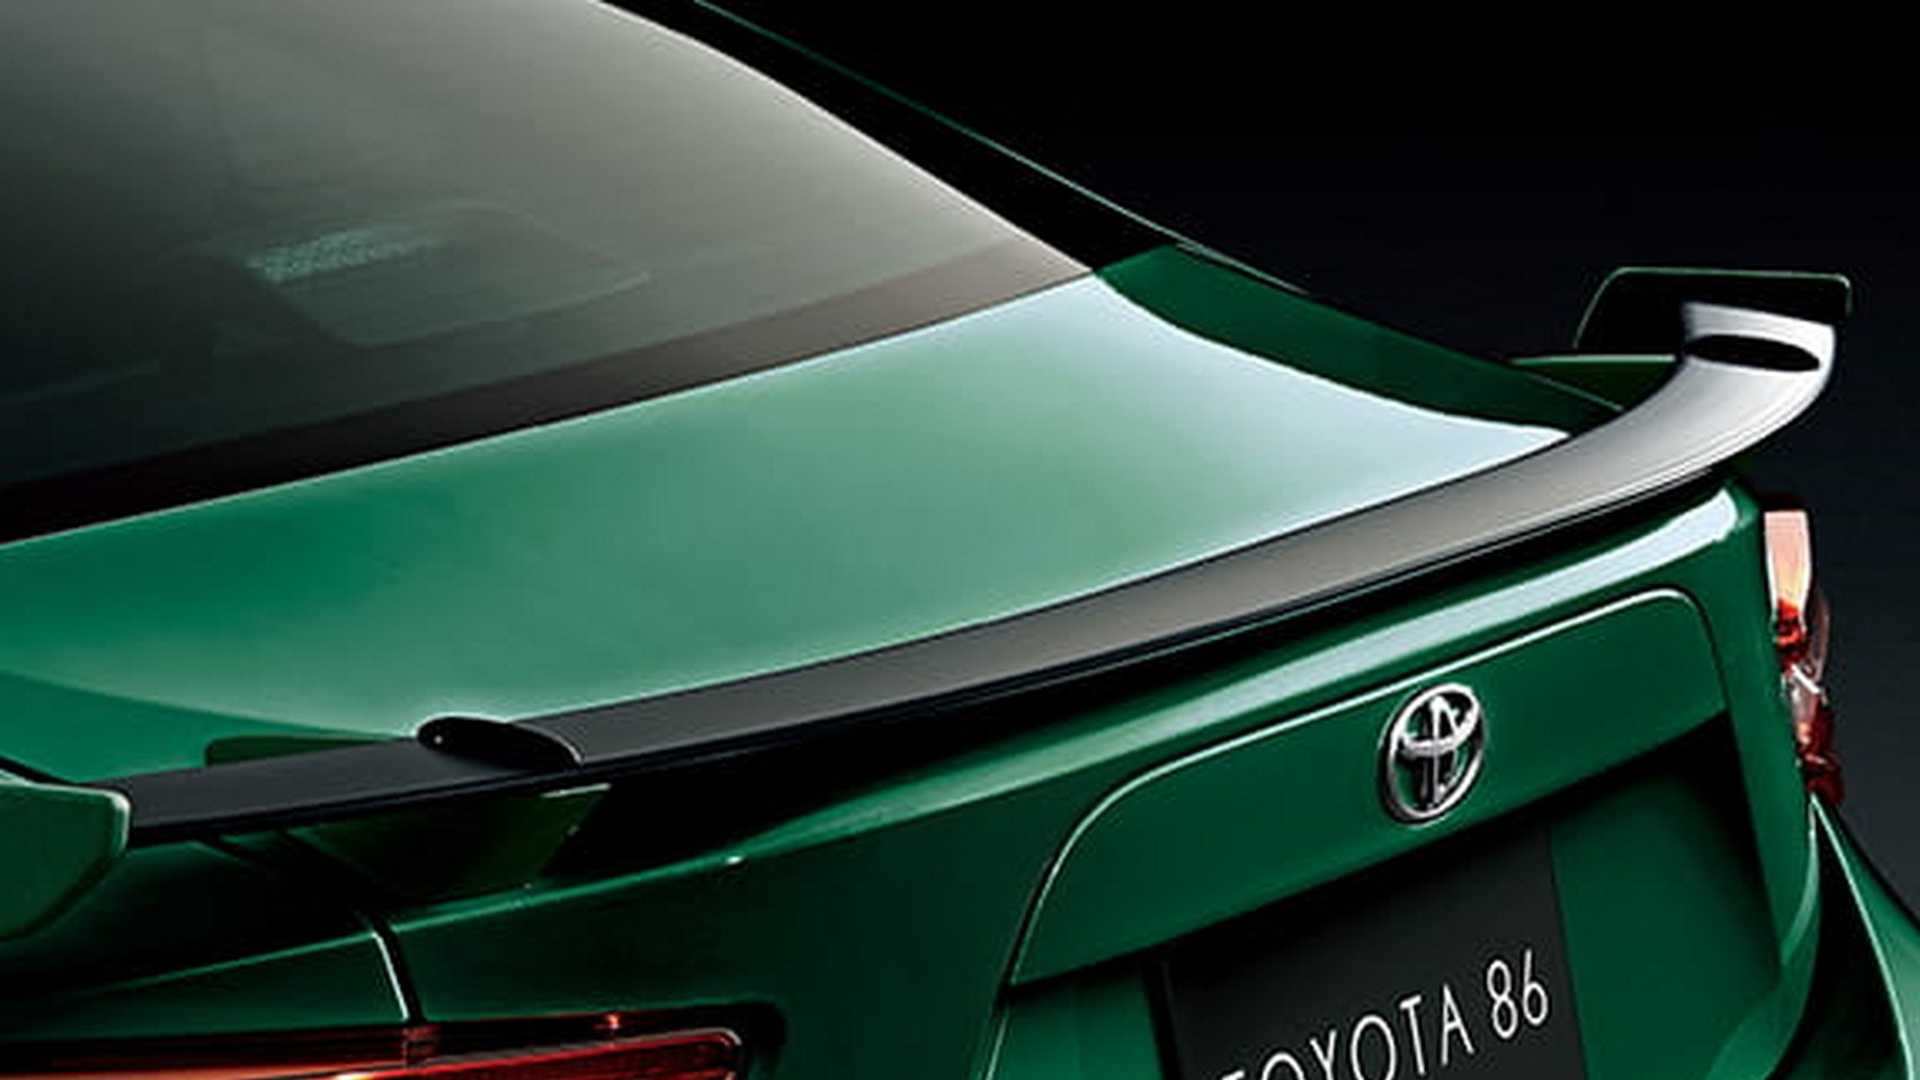 Toyota_GT86_British_Green_Limited_0002